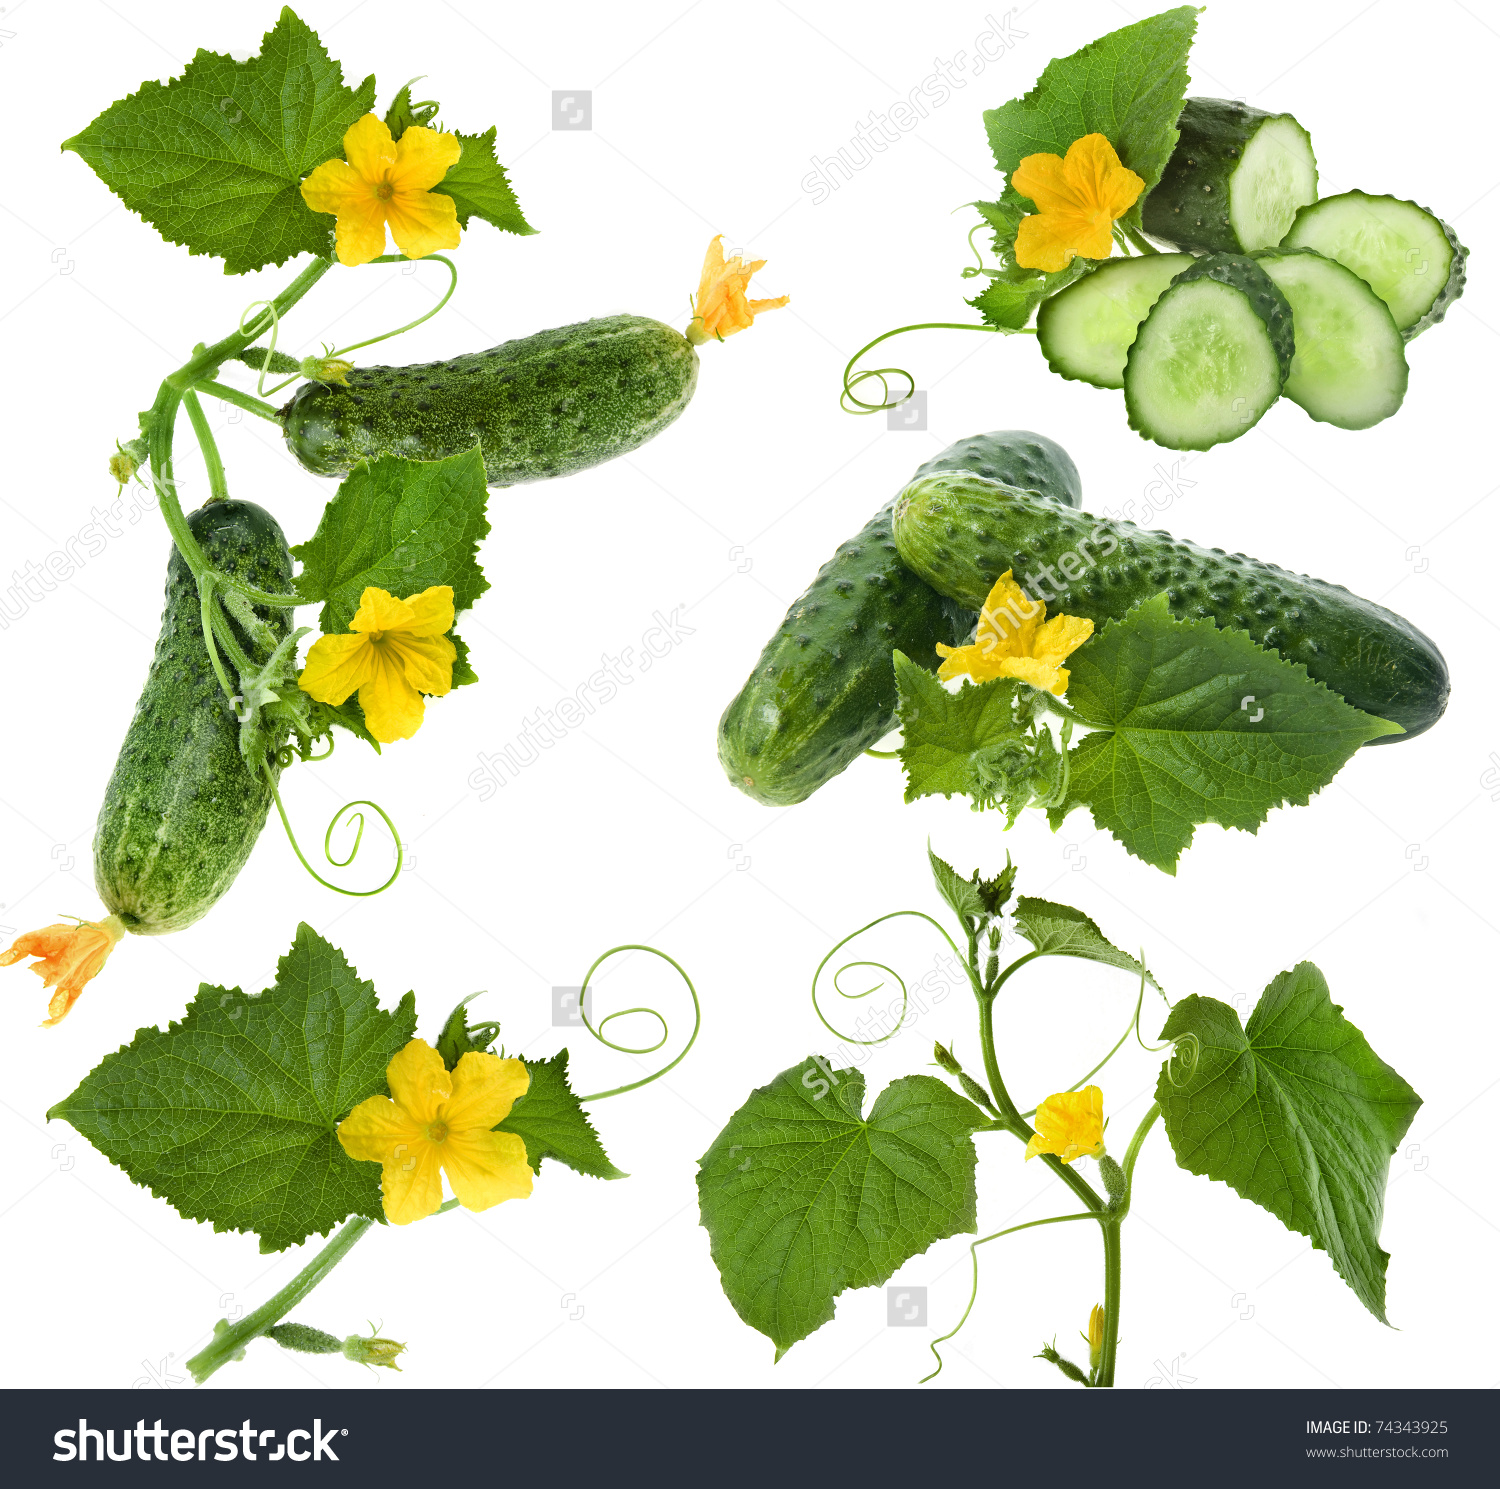 Cucumber Vegetables Leafs Flowers Isolated On Stock Photo 74343925.